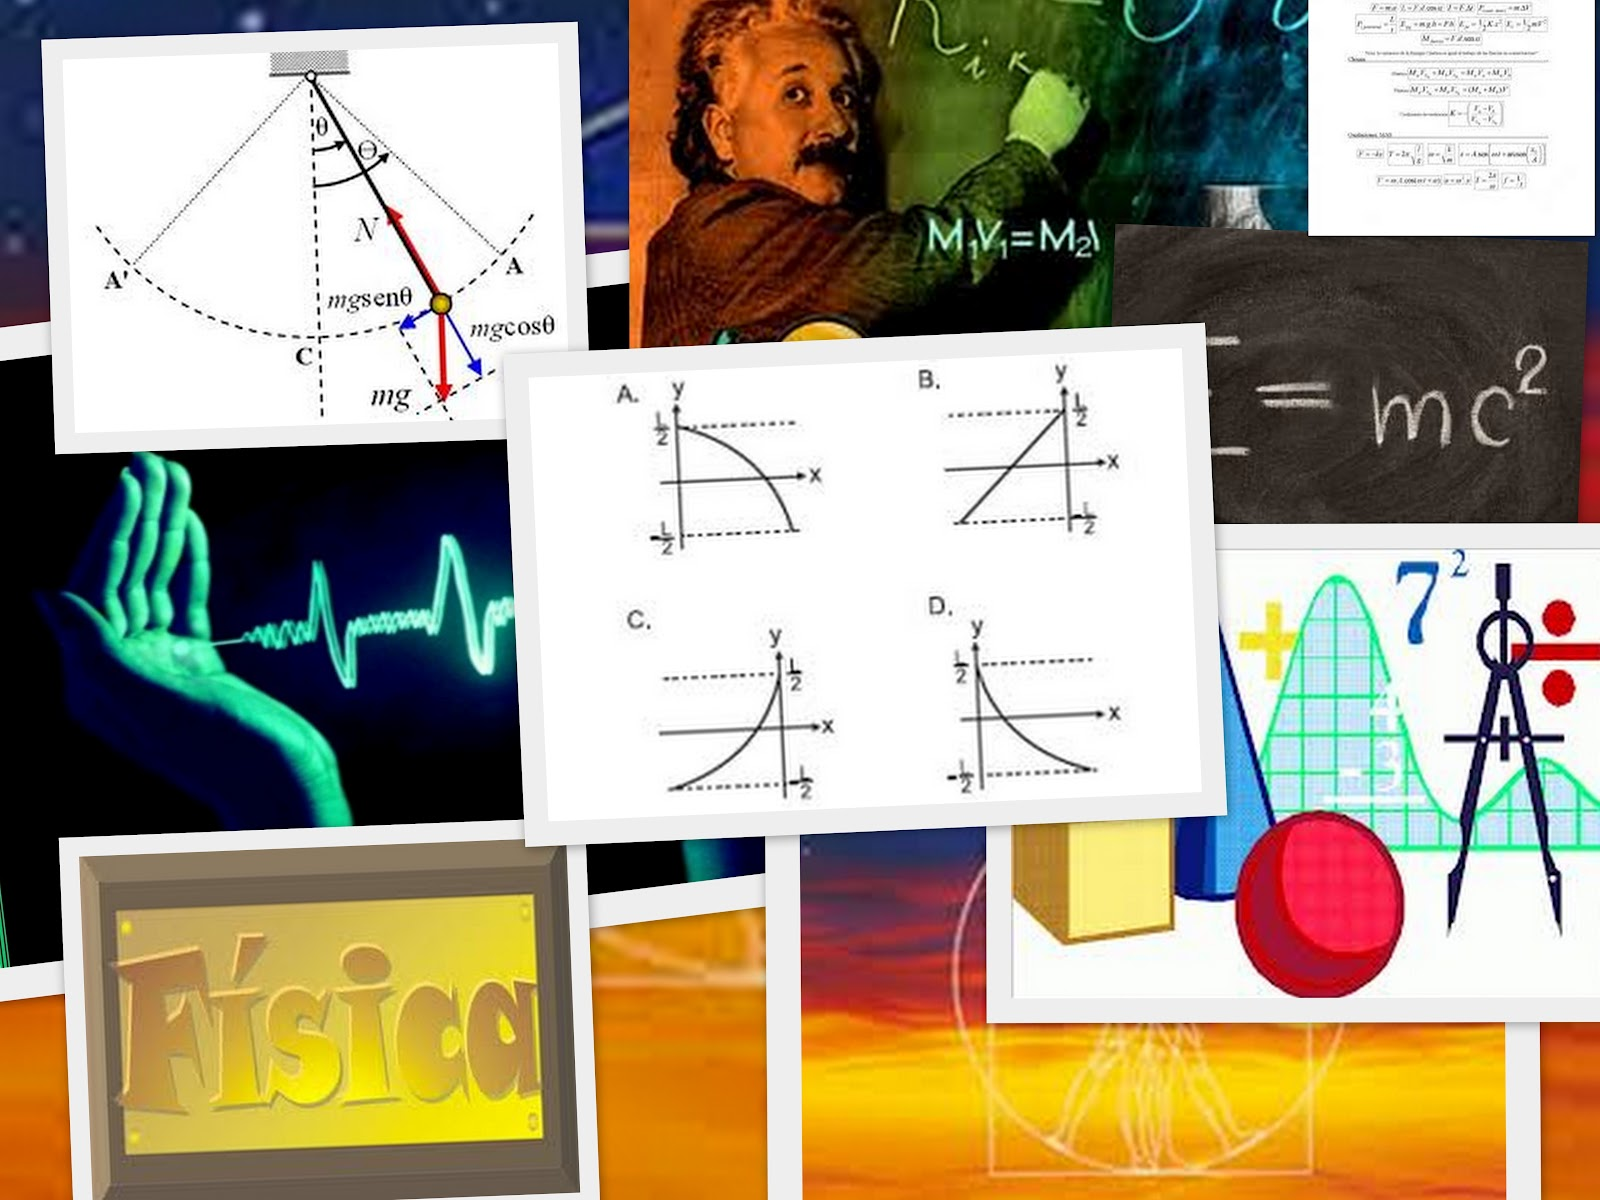 APRENDIZAJE MAESTRO 2.0: COLLAGES PICASA FISICA